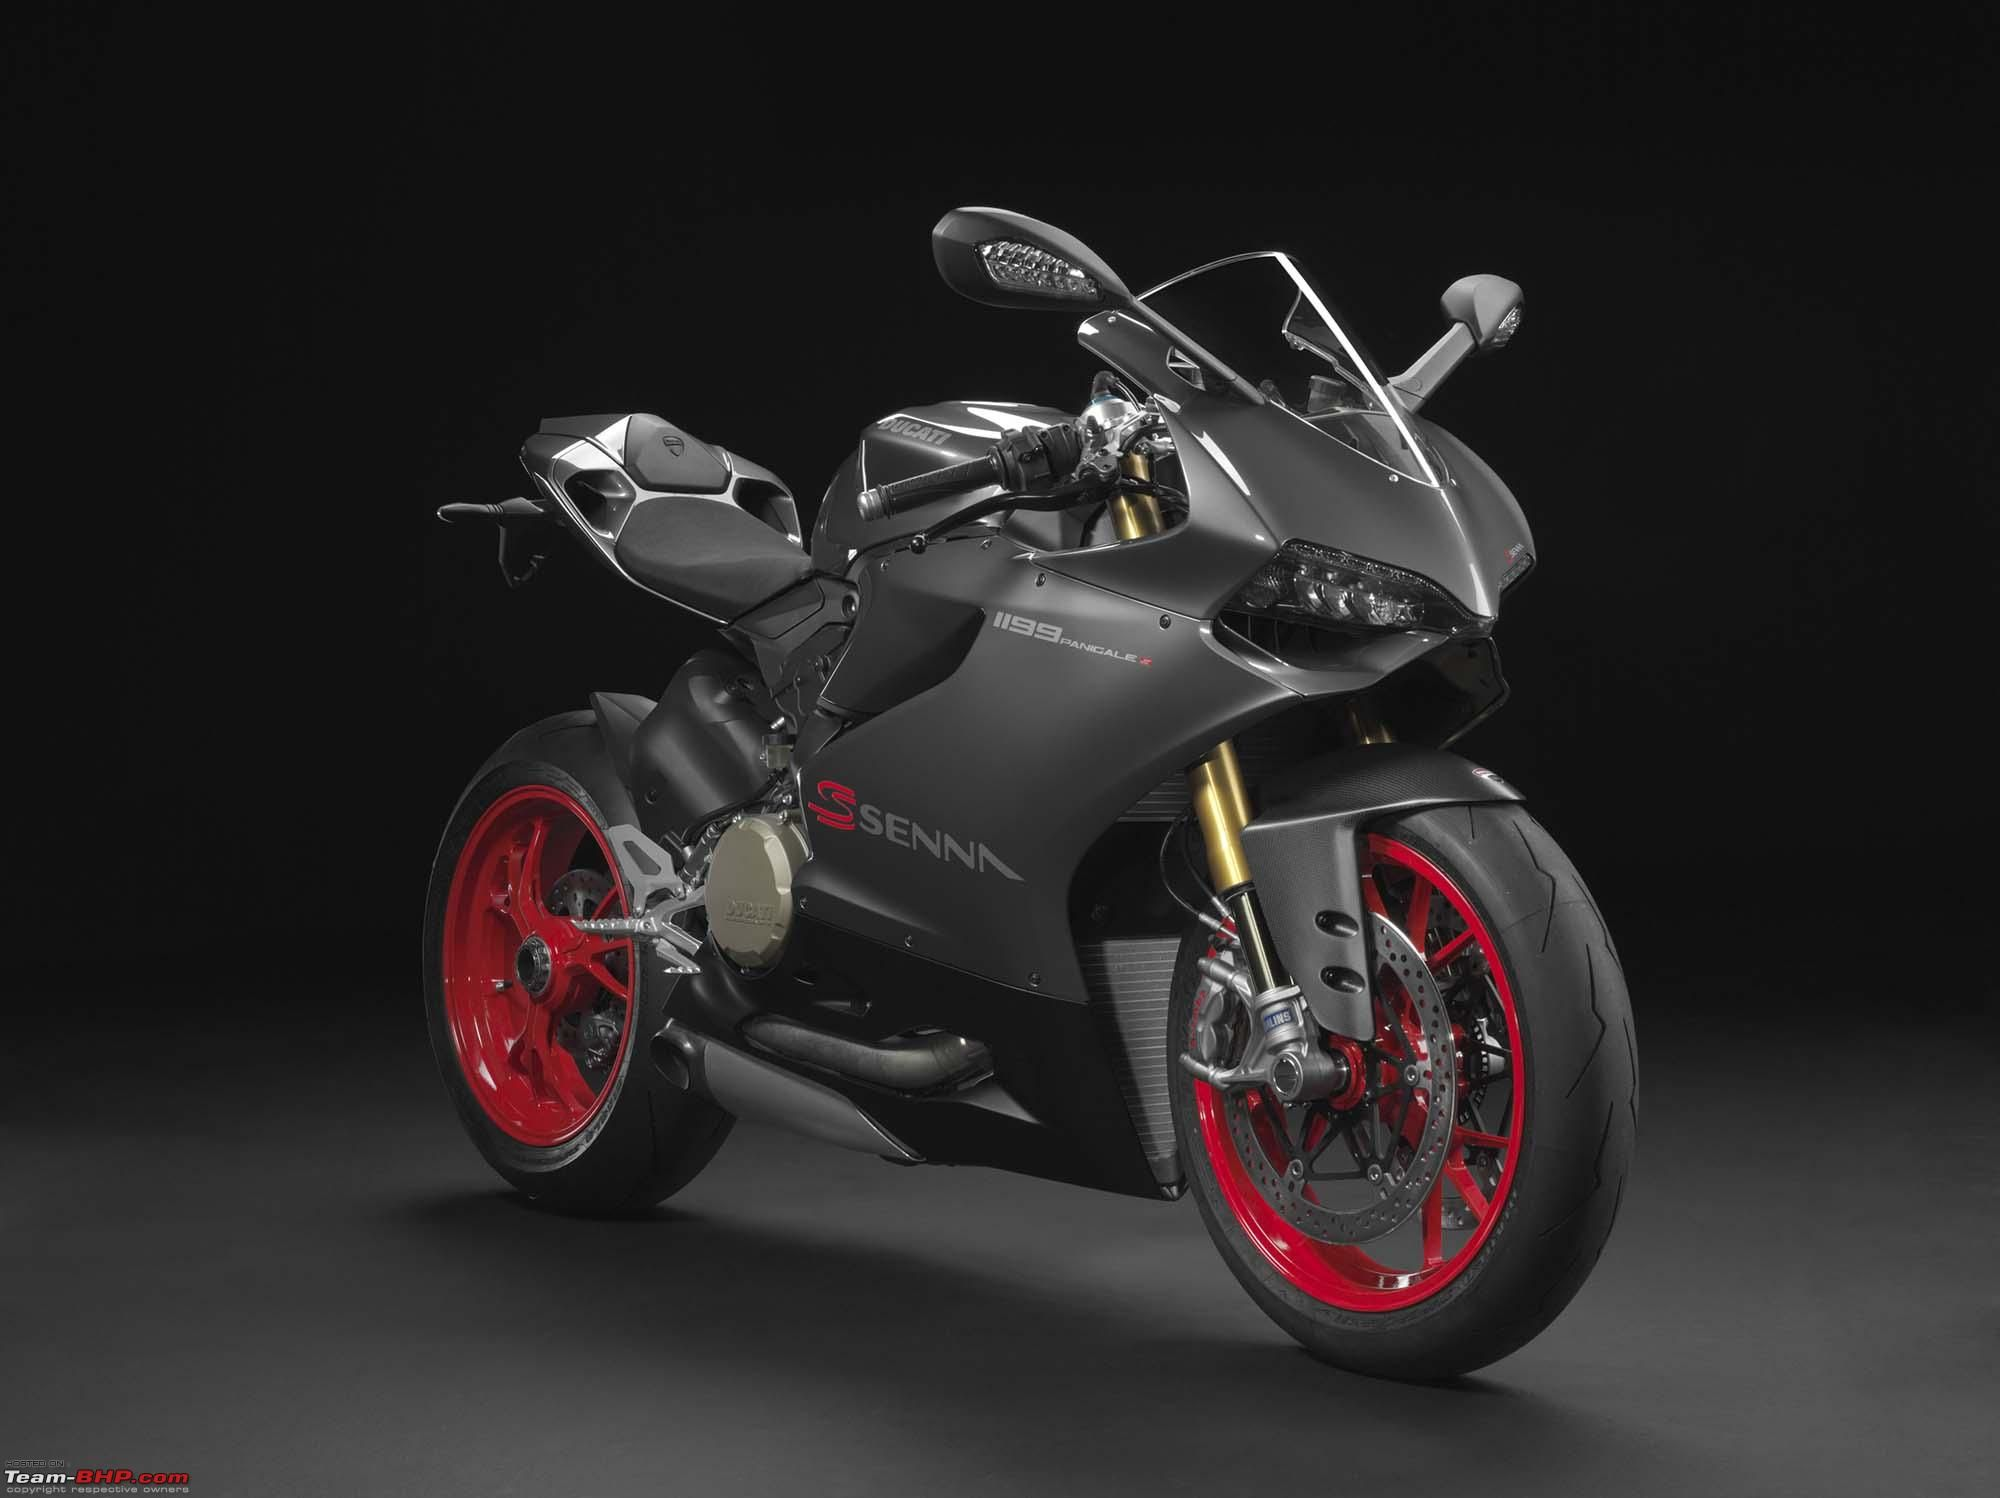 Ducati 1299 Panigale S Background Wallpaper - HD Vehicle ...